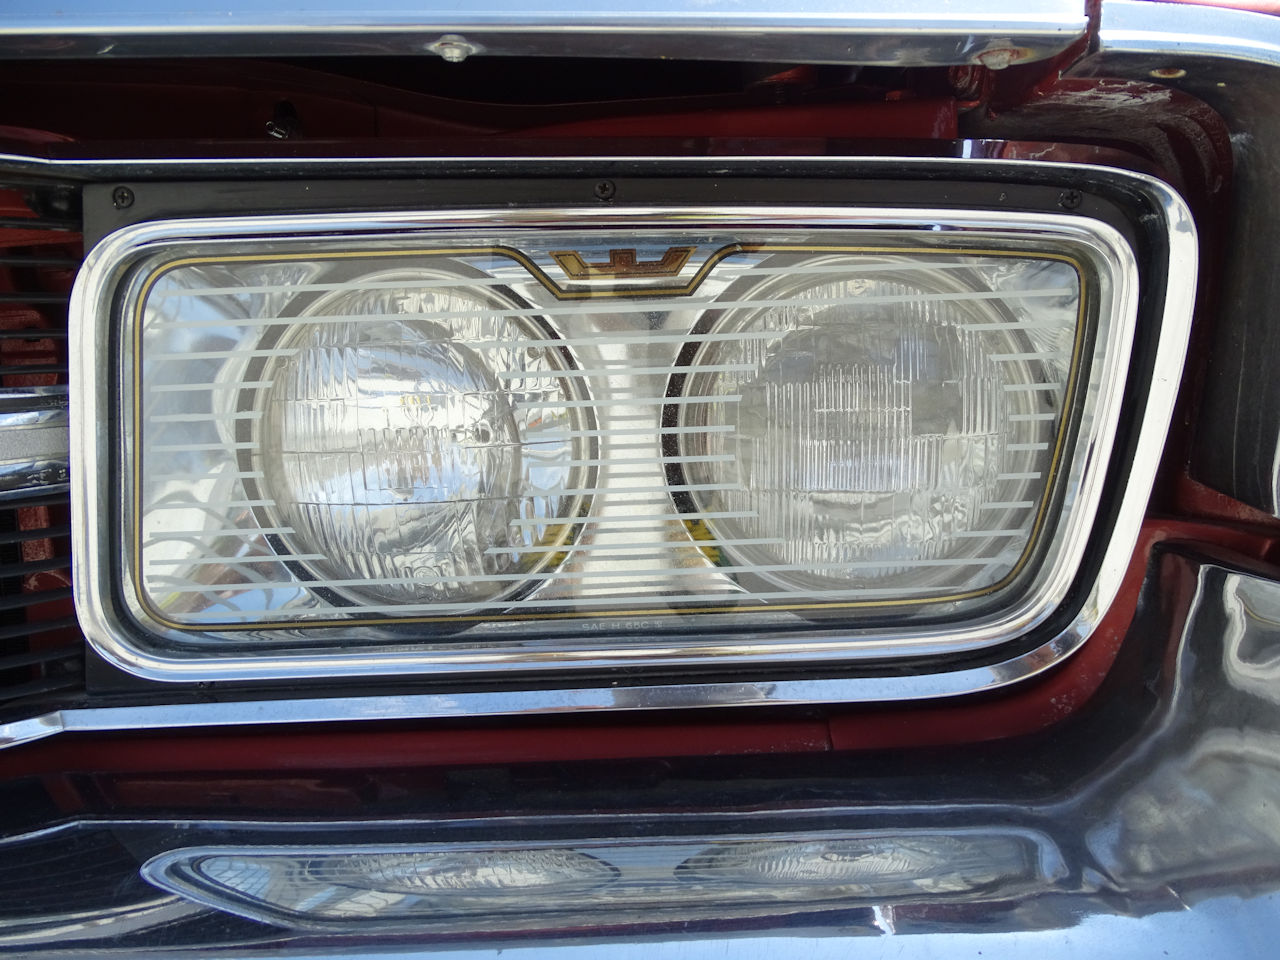 1965 Chrysler 300 53